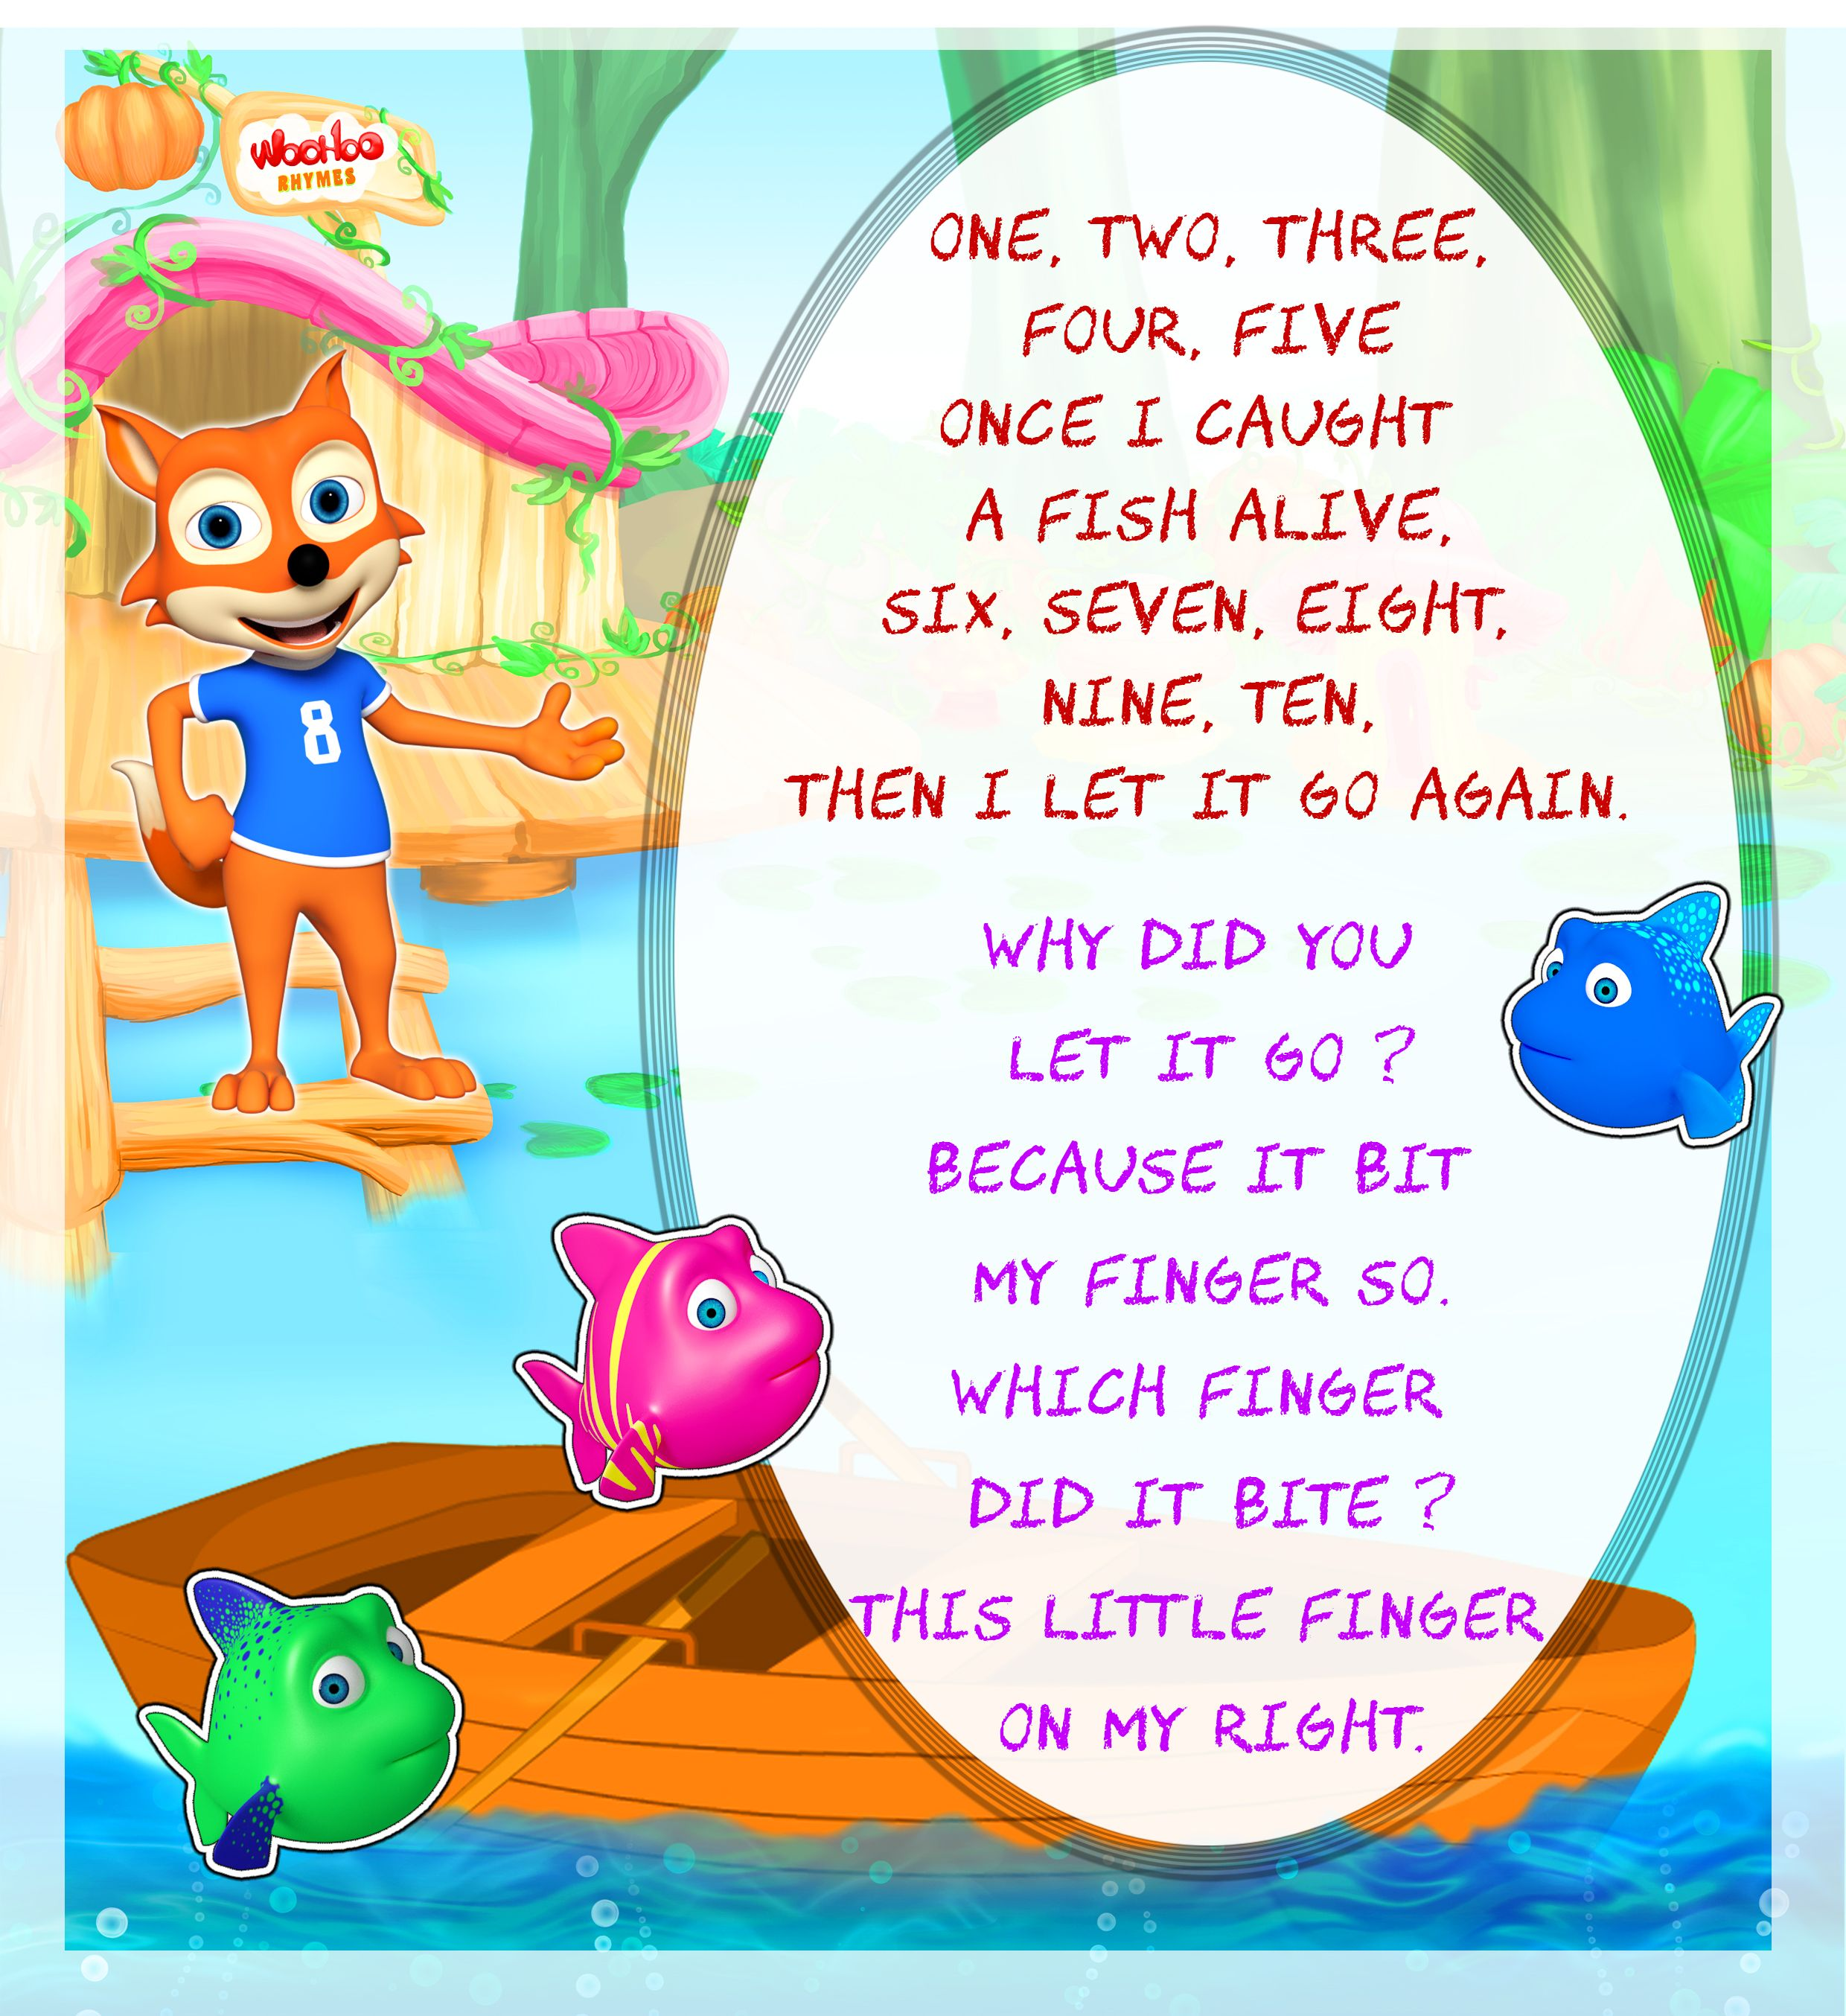 Once I caught a Fish Alive @WooHooRhymes #nurseryrhymes #poster